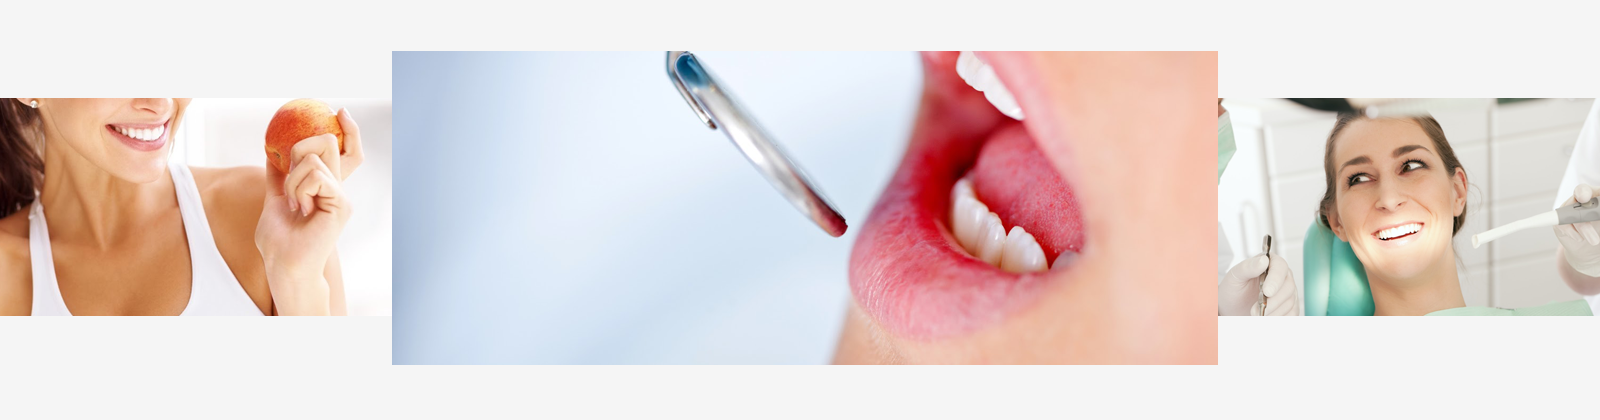 a patient with their mouth open during a dental check